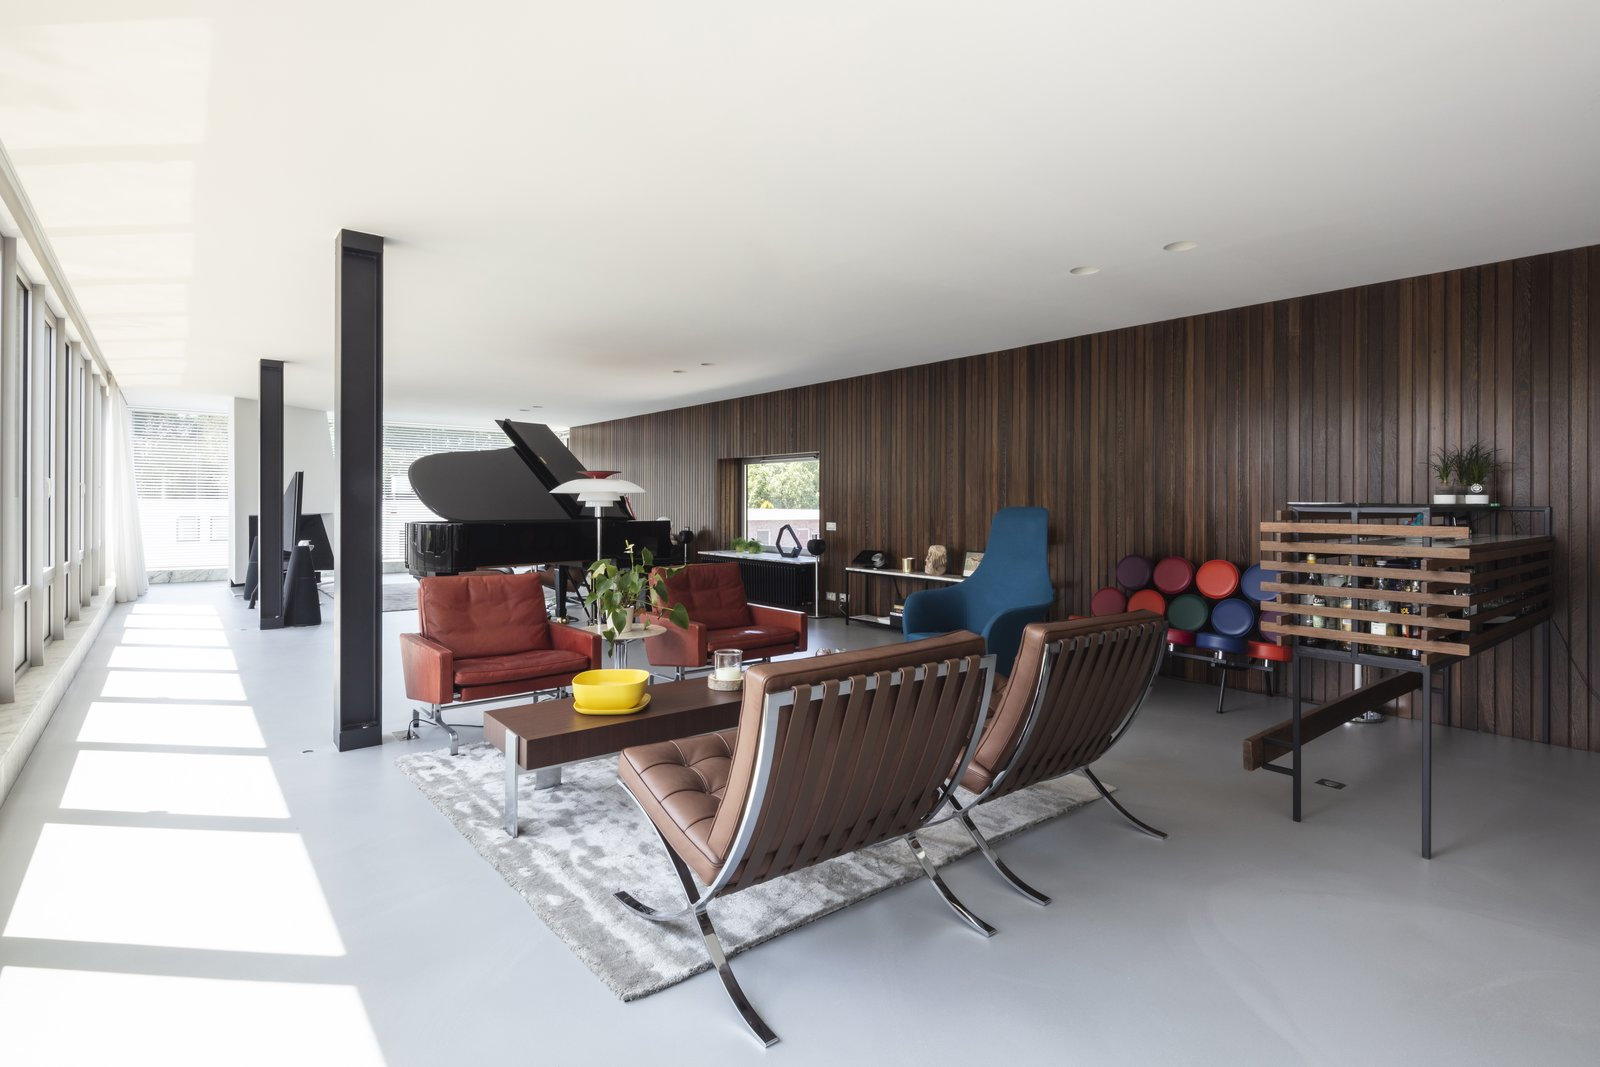 Living Room, Coffee Tables, Chair, Bench, Recessed Lighting, Floor Lighting, End Tables, and Rug Floor  Photos from A Major Restoration Updated This Midcentury Landmark in Belgium